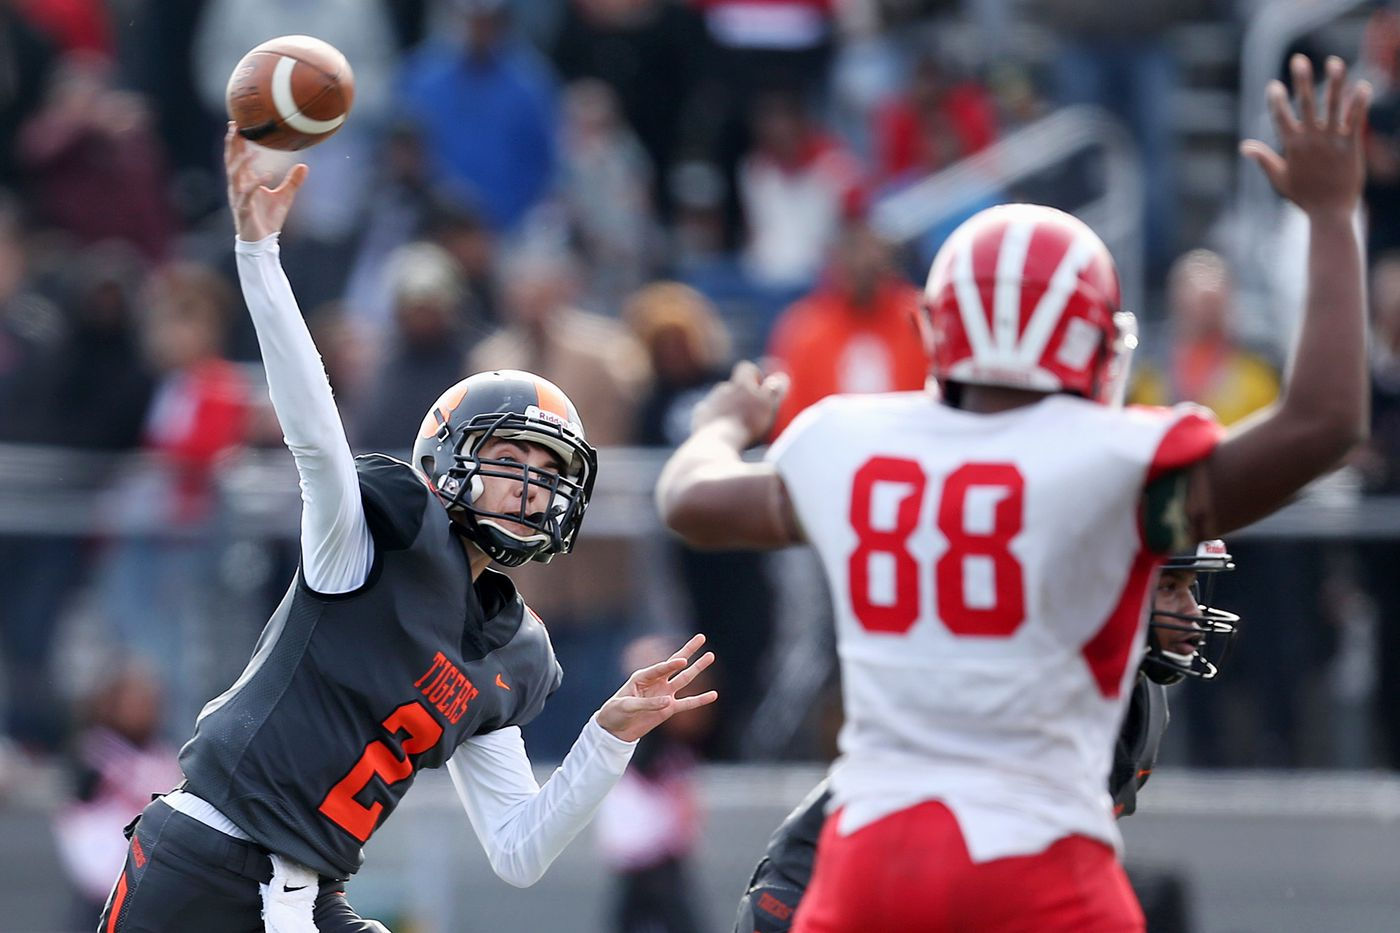 Saturday's South Jersey roundup: Woodrow Wilson's Nick Kargman sets state passing record